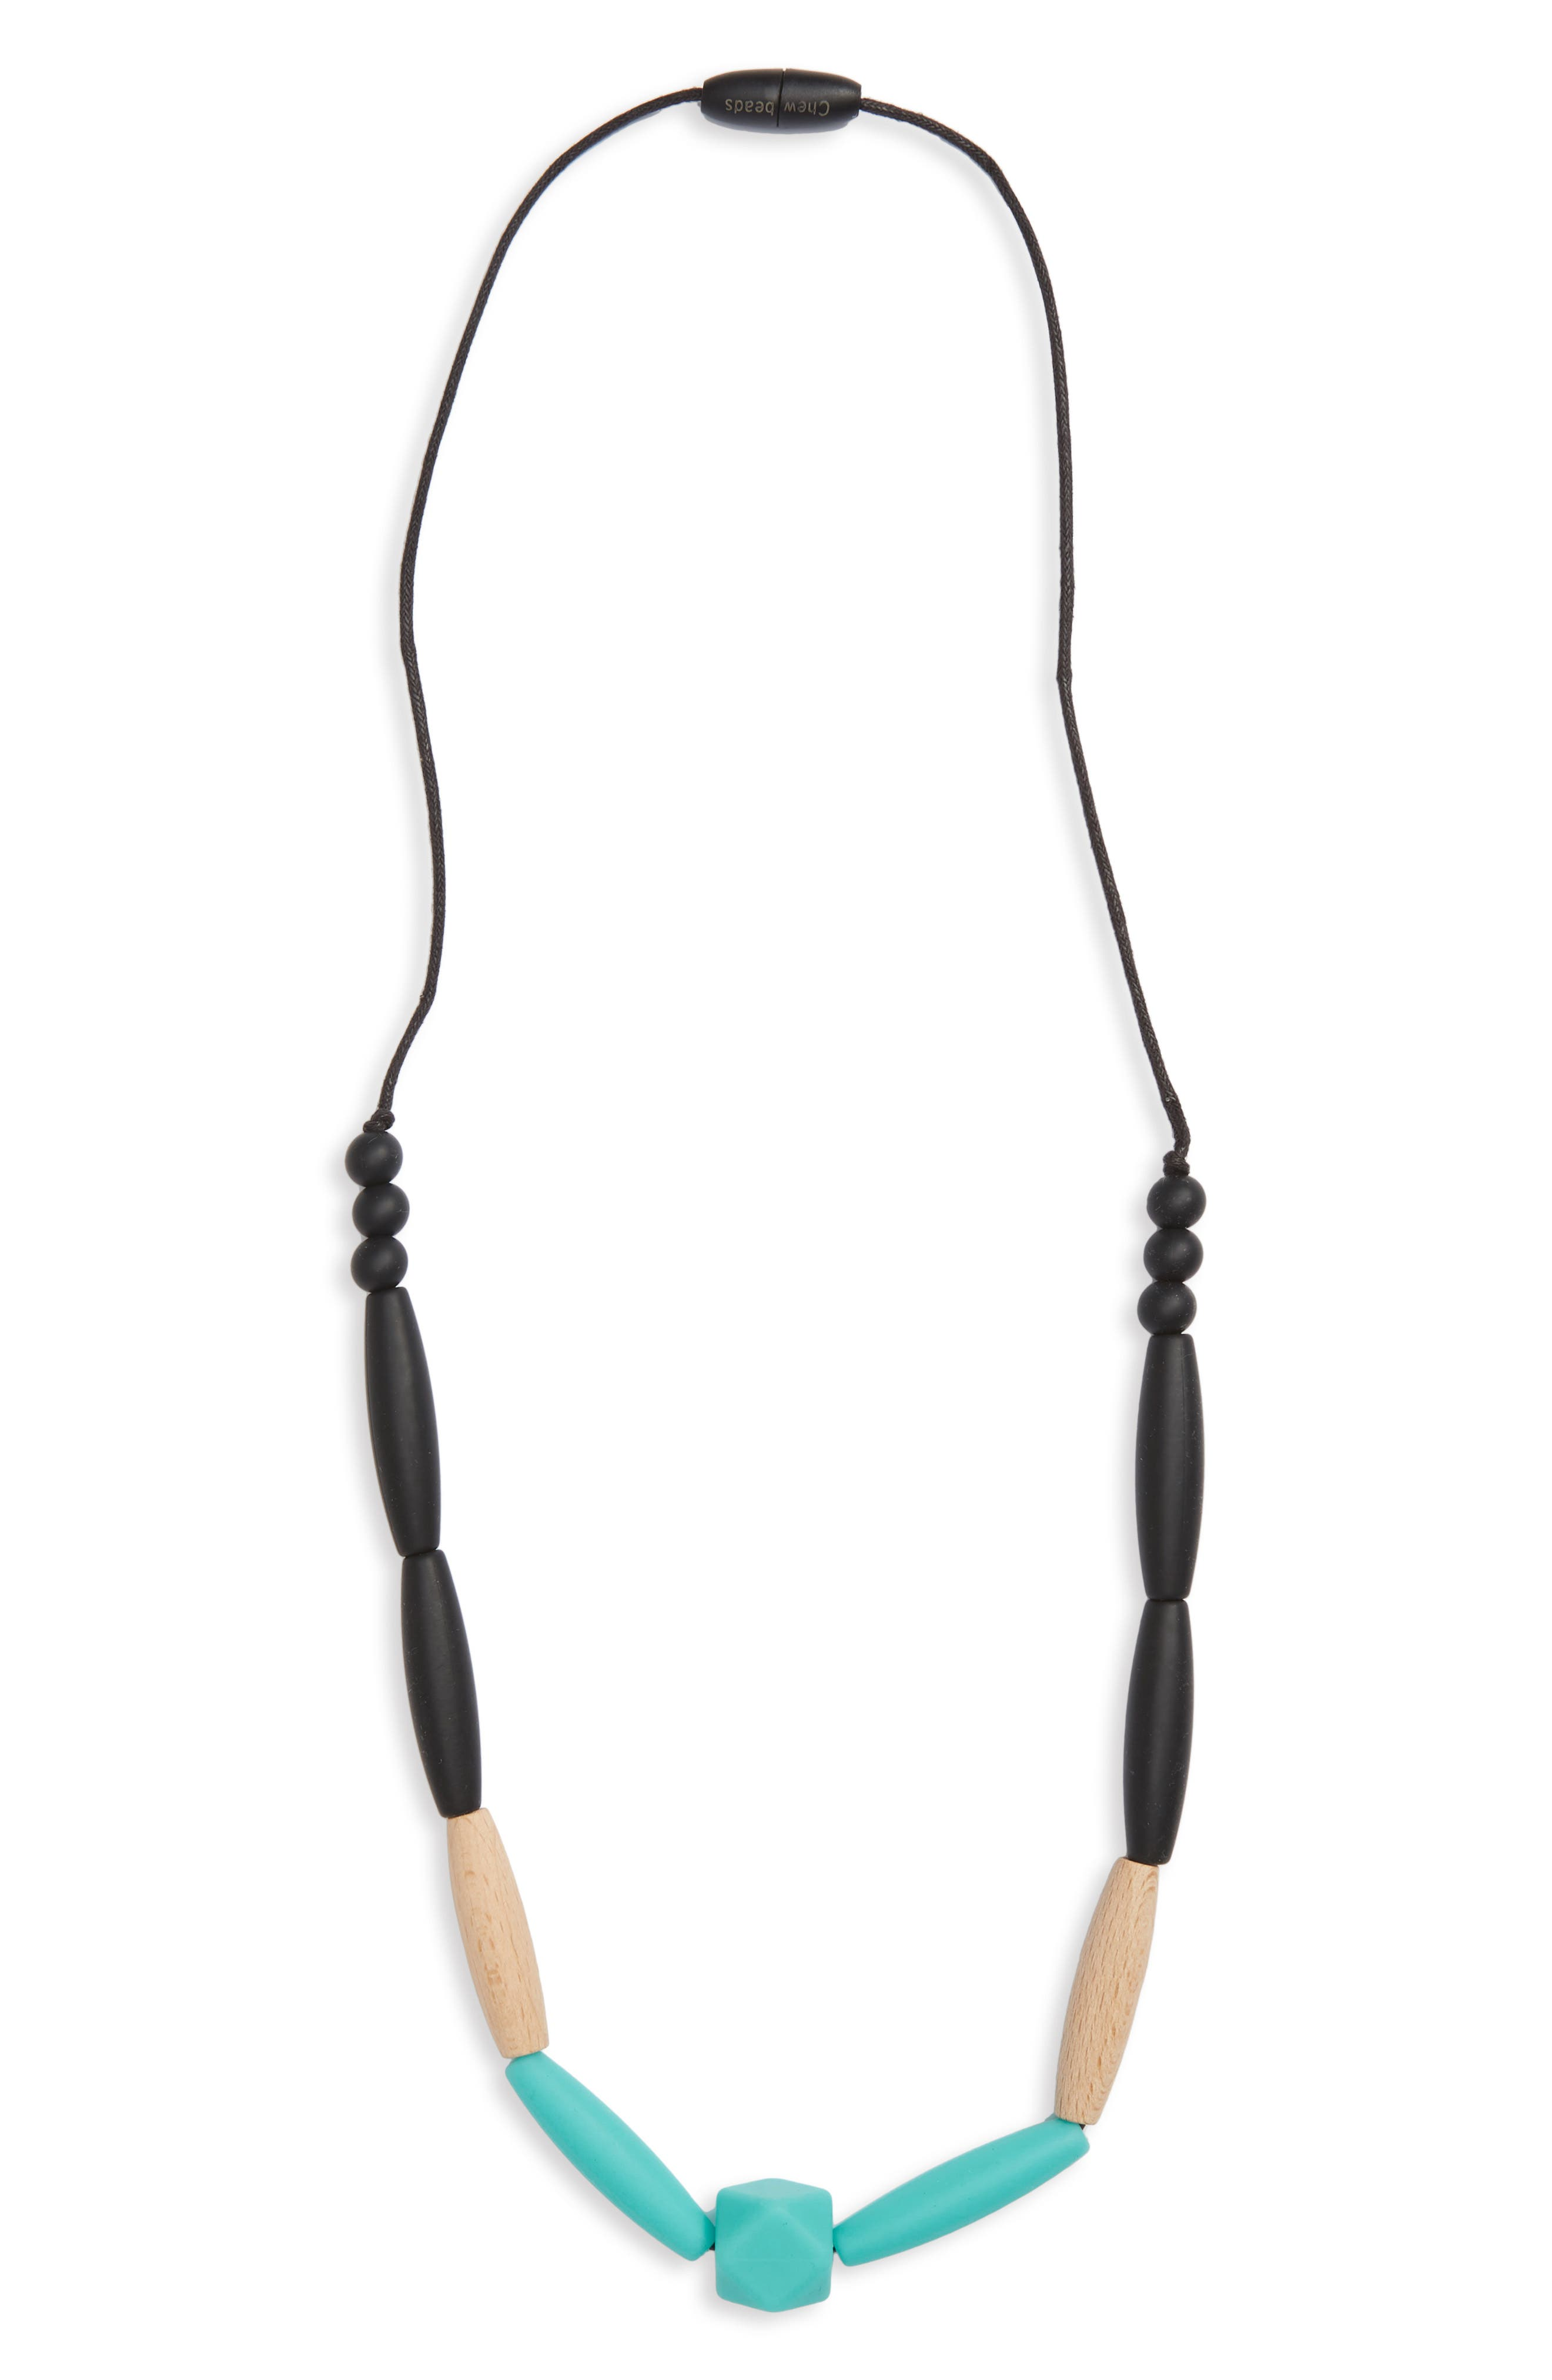 Chewbeads Bedford - Brooklyn Collection Teether Necklace